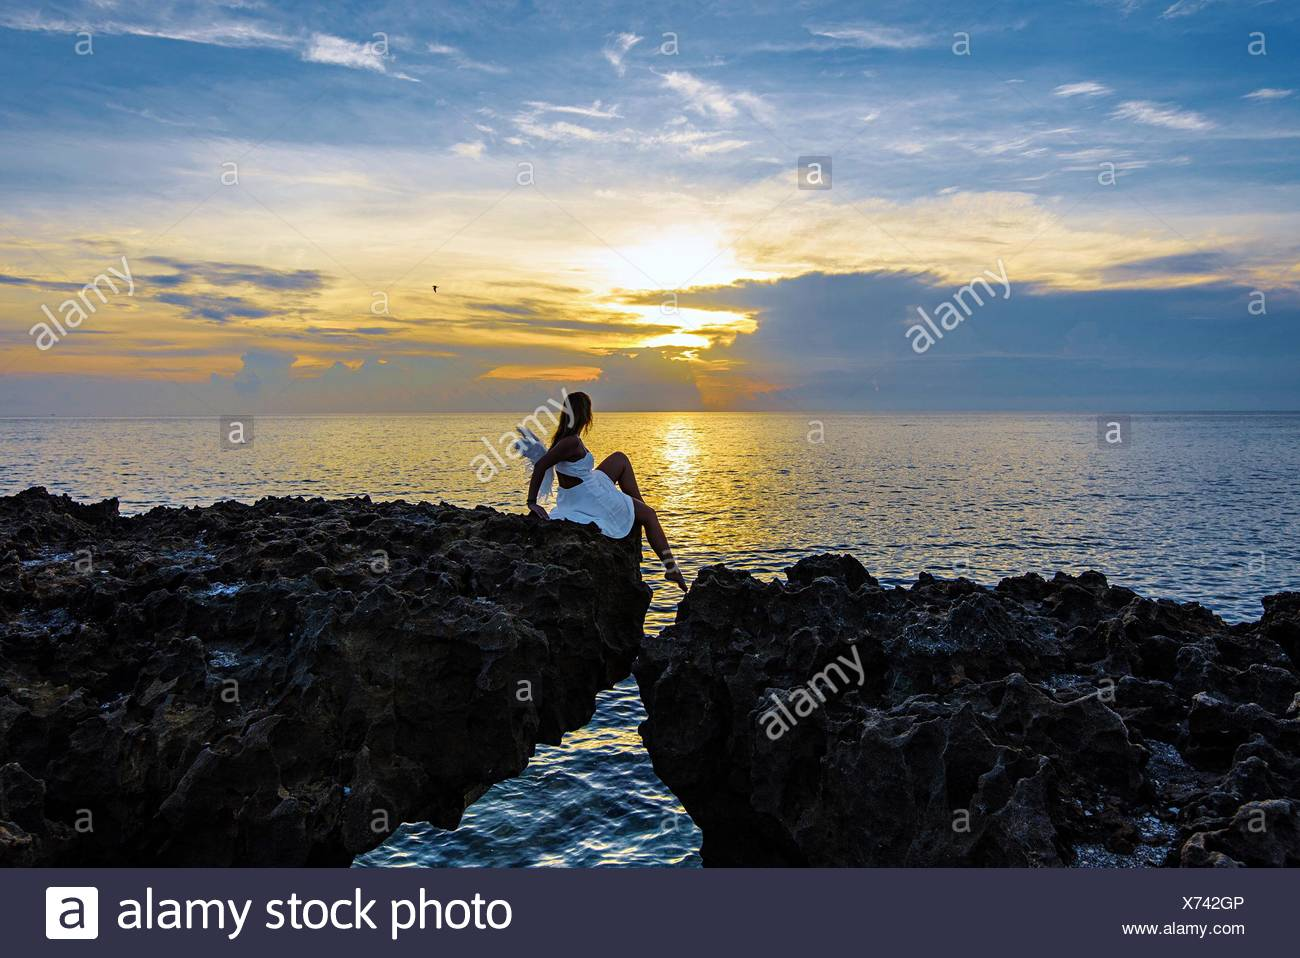 Woman Sitting On Cliff Over Sea Against Sky During Sunset - Stock Image